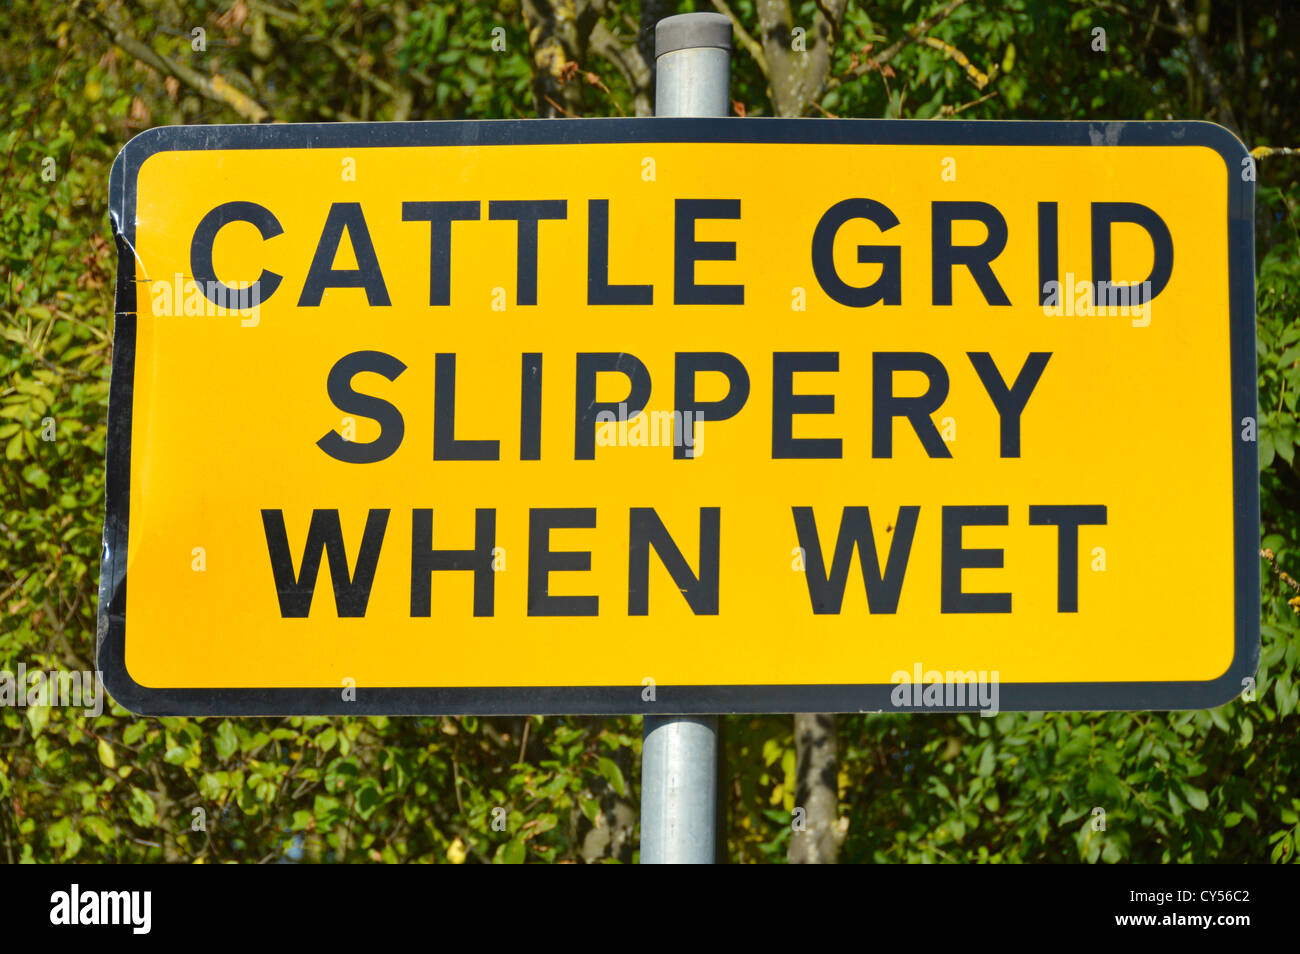 Slippery when wet warning sign on approach to Cattle Grid - Stock Image